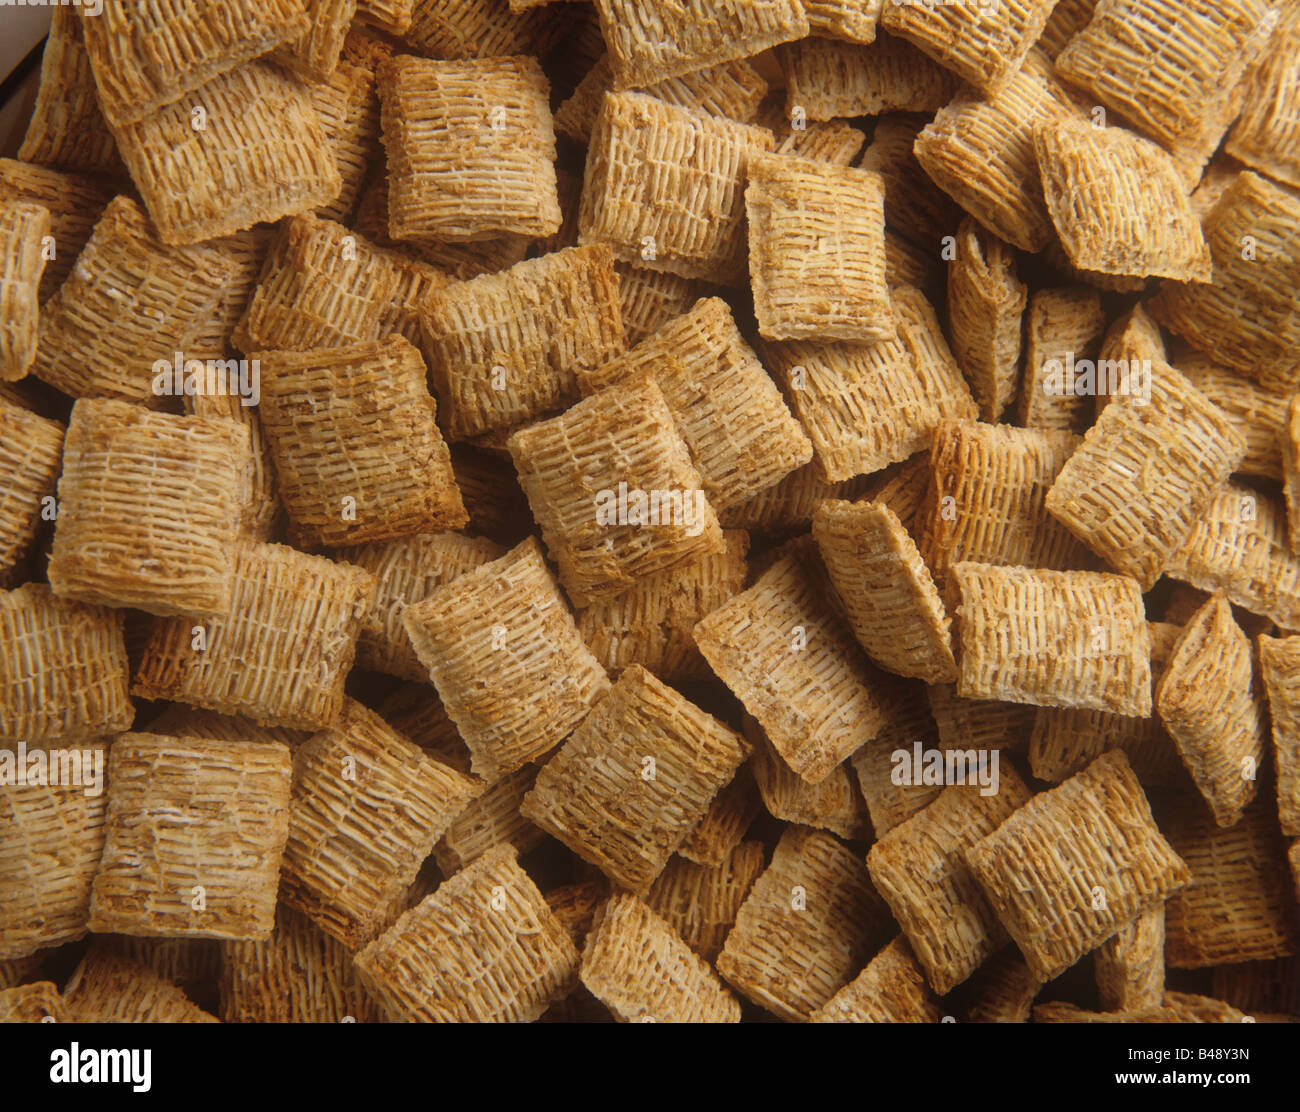 Wheat Chex breakfast cereal Richard B Levine - Stock Image